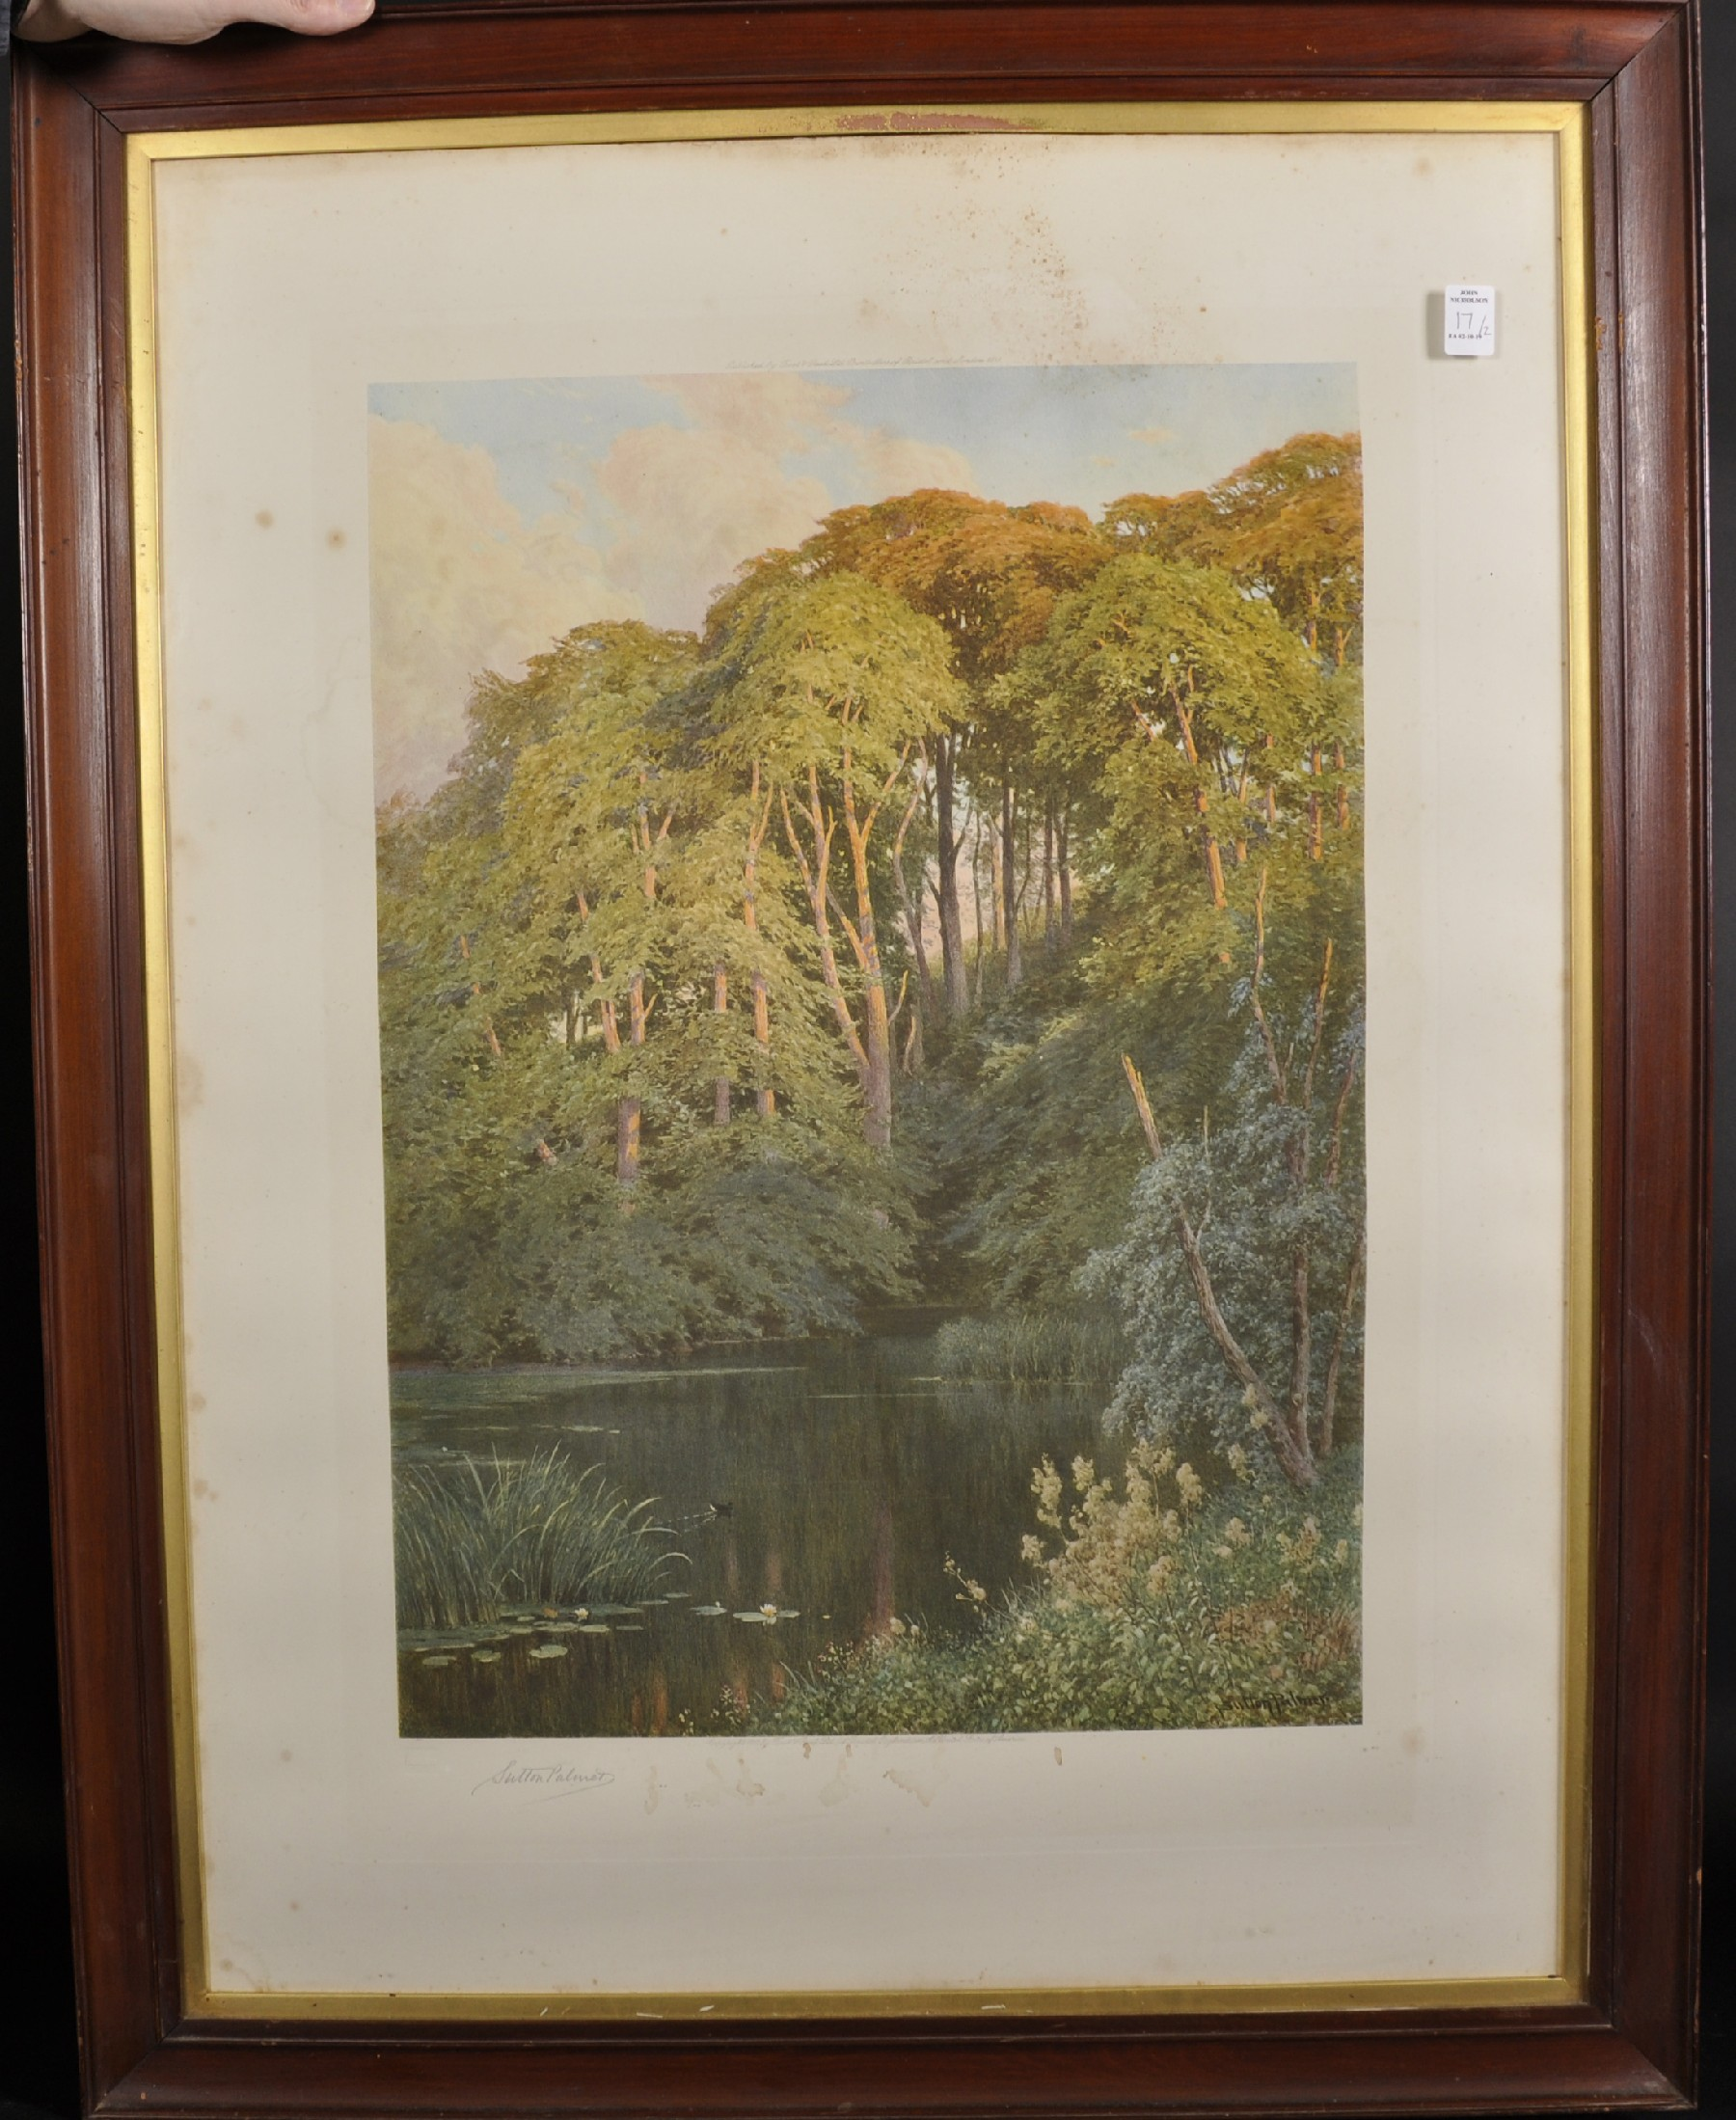 Harry Sutton Palmer (1854-1933) British. A Tranquil River Landscape, Print, Signed in Pencil, with - Image 3 of 6